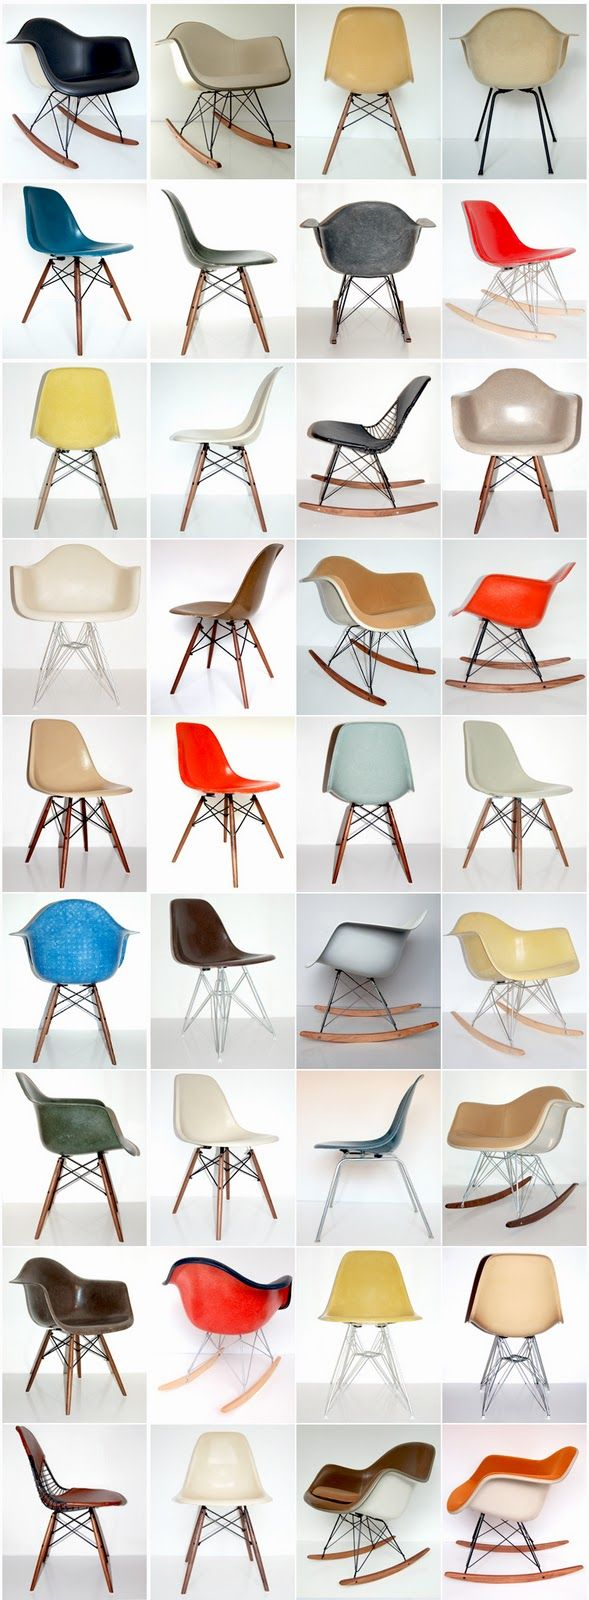 Modern Conscience is a modern furniture workshop featuring an online gallery and a selection of hand-picked original modern chair and furniture designs.